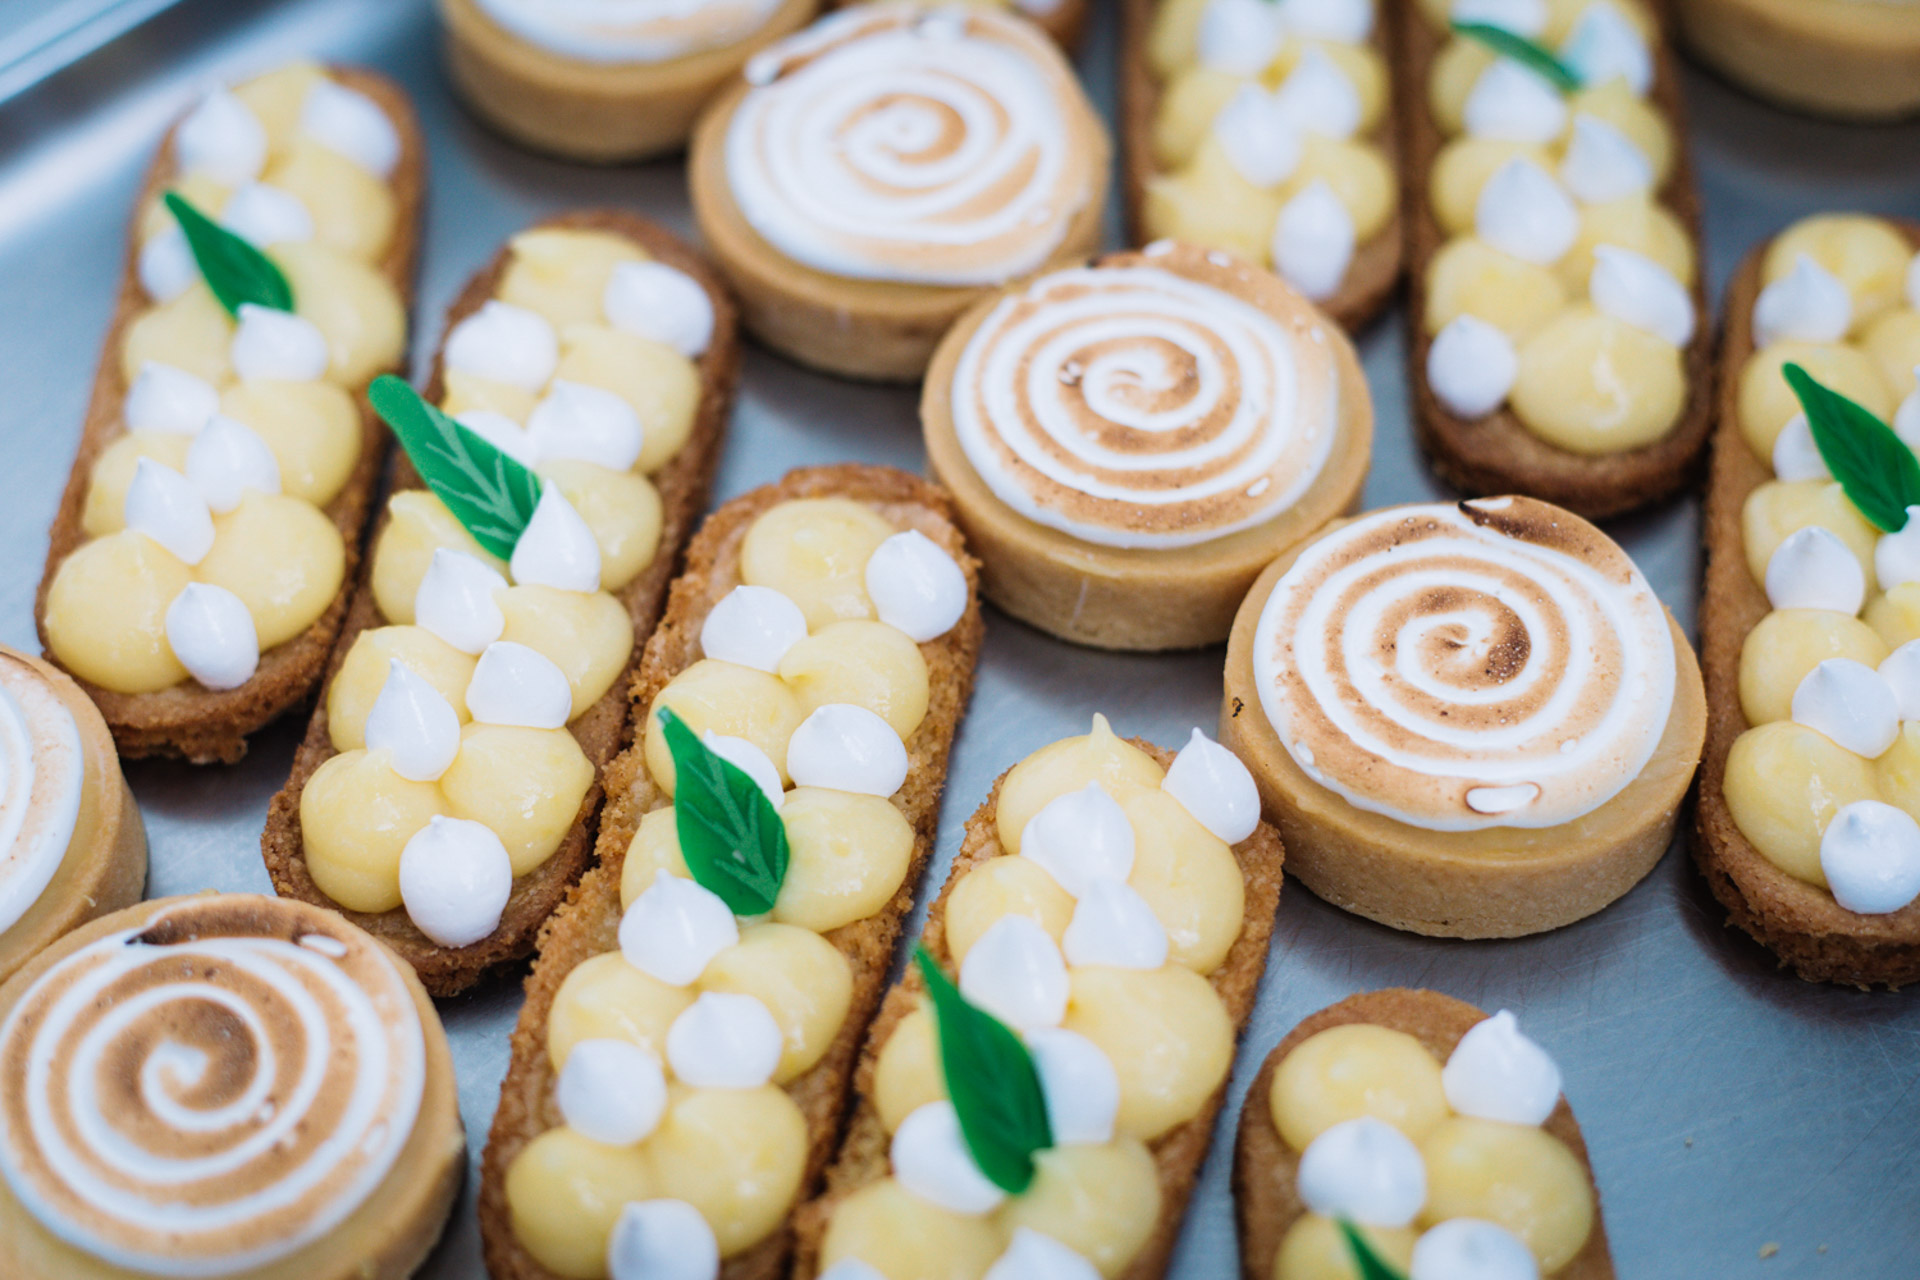 lemon pastries on a dessert during a networking lunch during MAPIC buffet